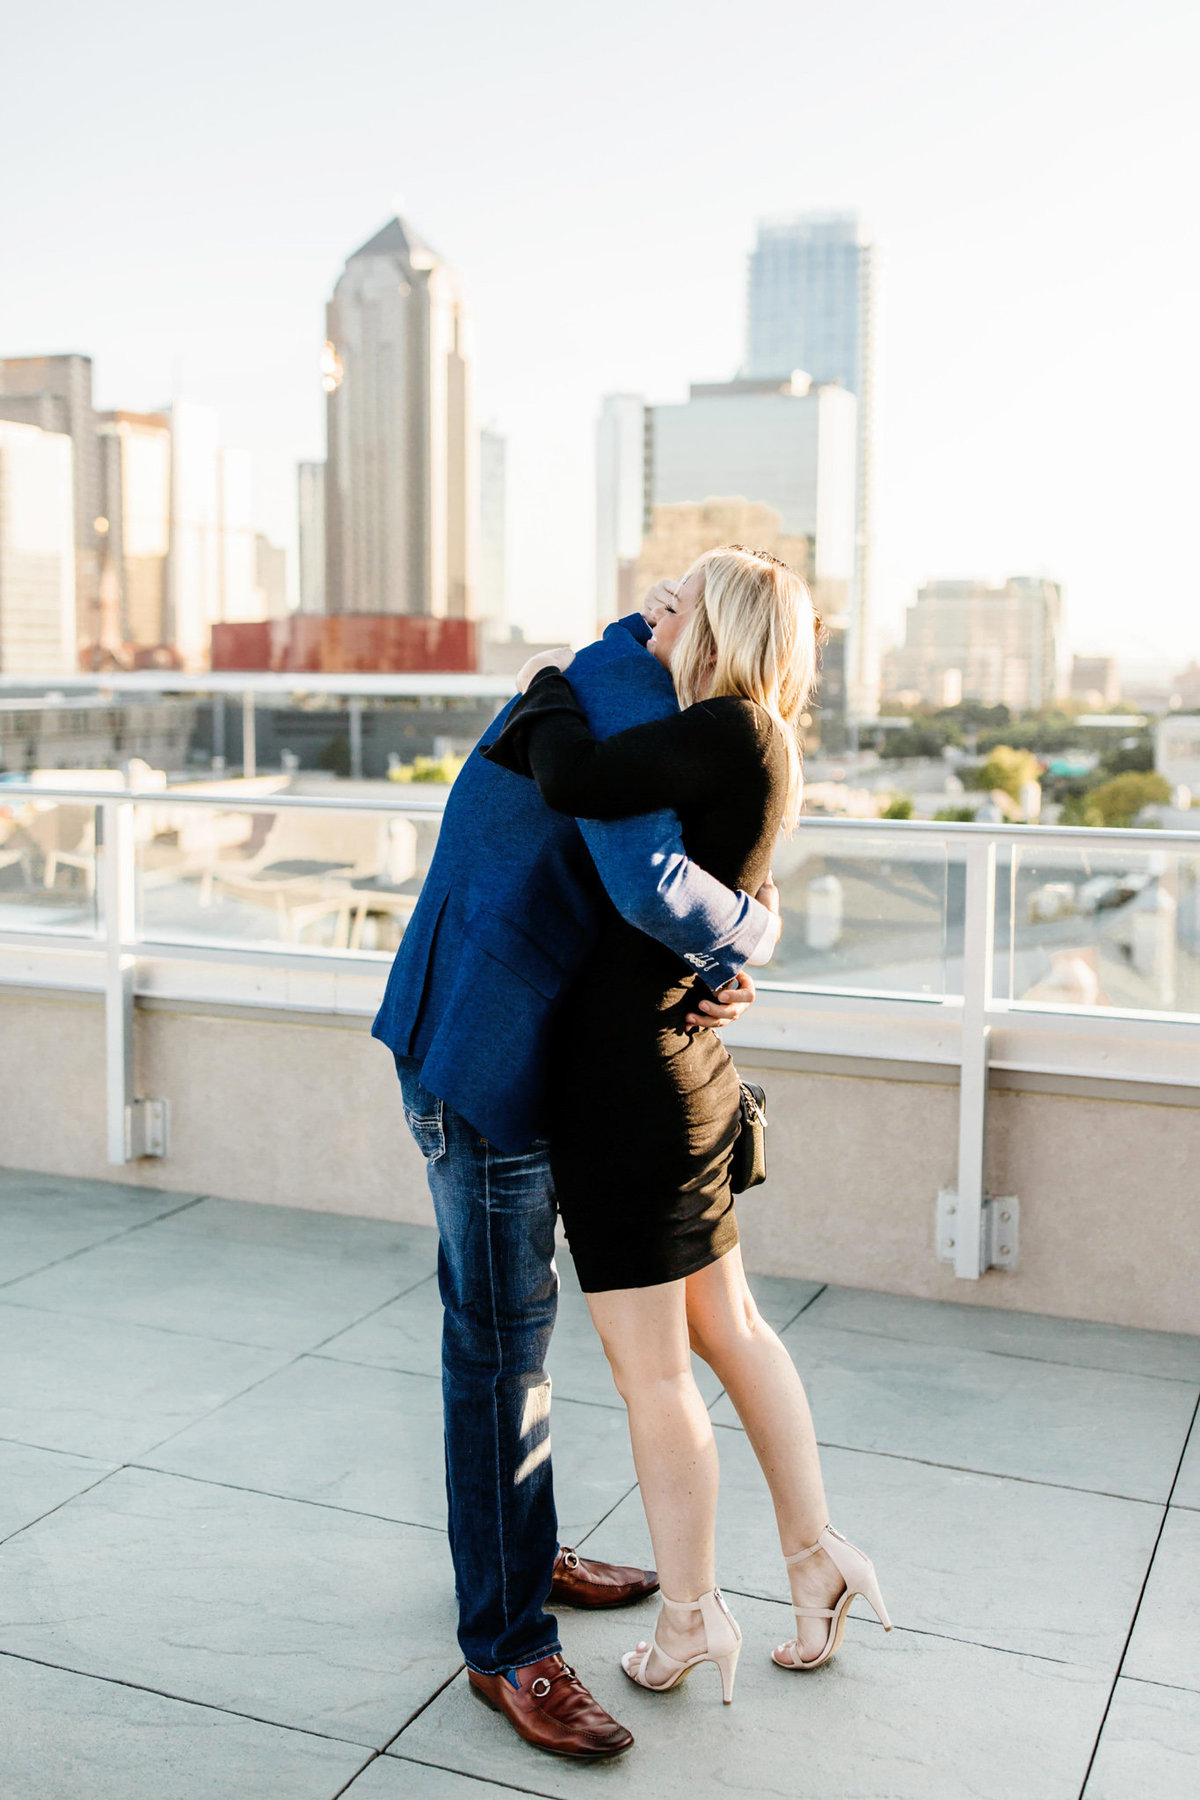 Eric & Megan - Downtown Dallas Rooftop Proposal & Engagement Session-39